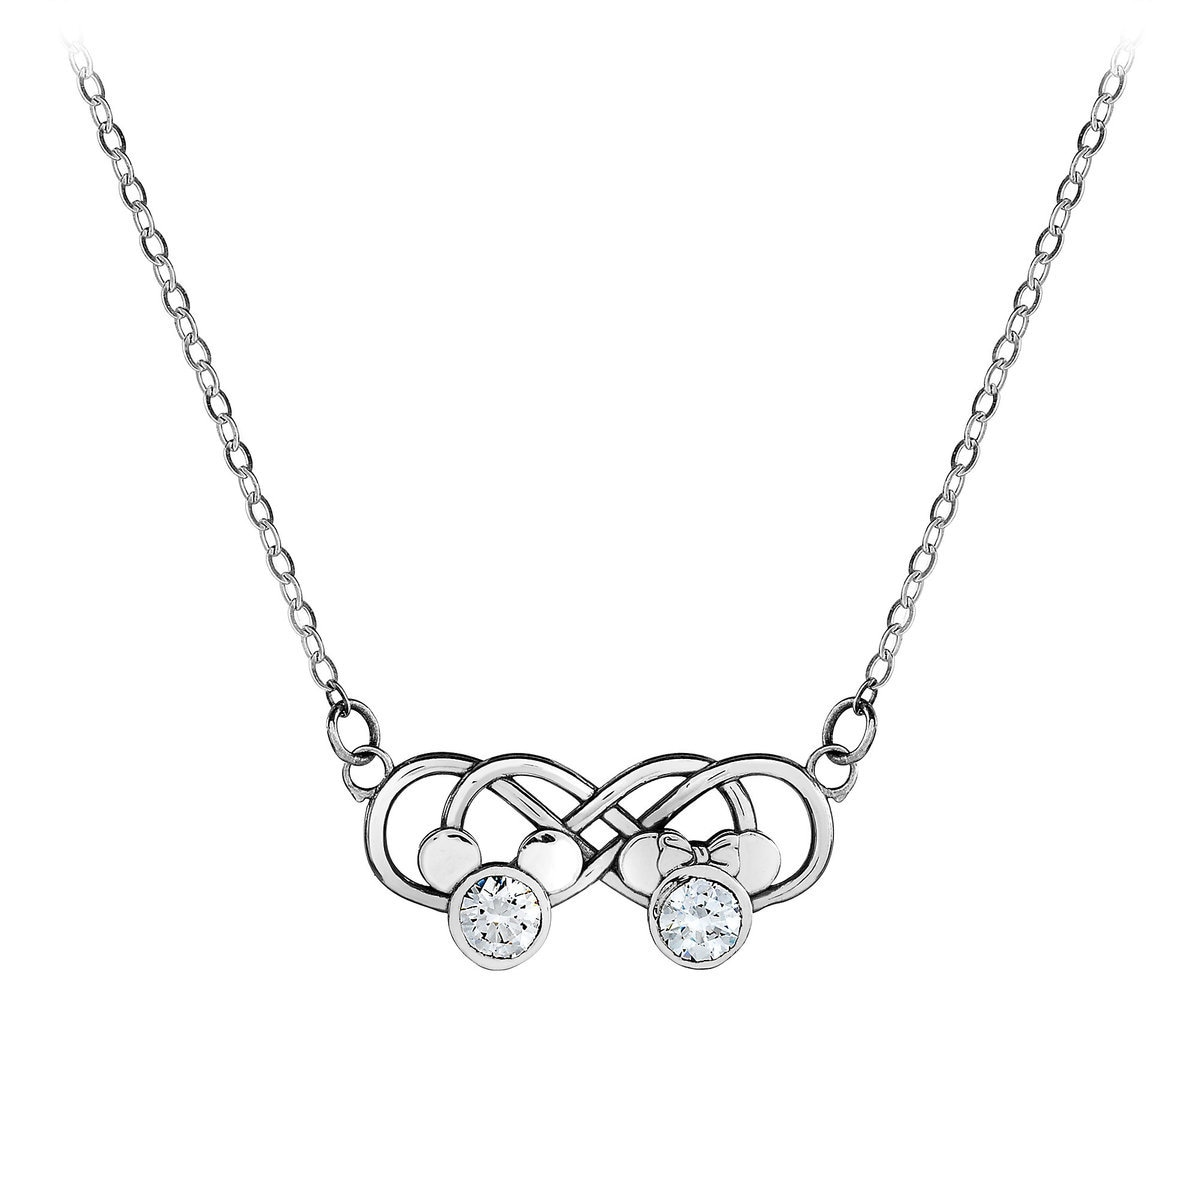 best with my pinterest infinity jewelry necklace names sign mynamenecklace images on